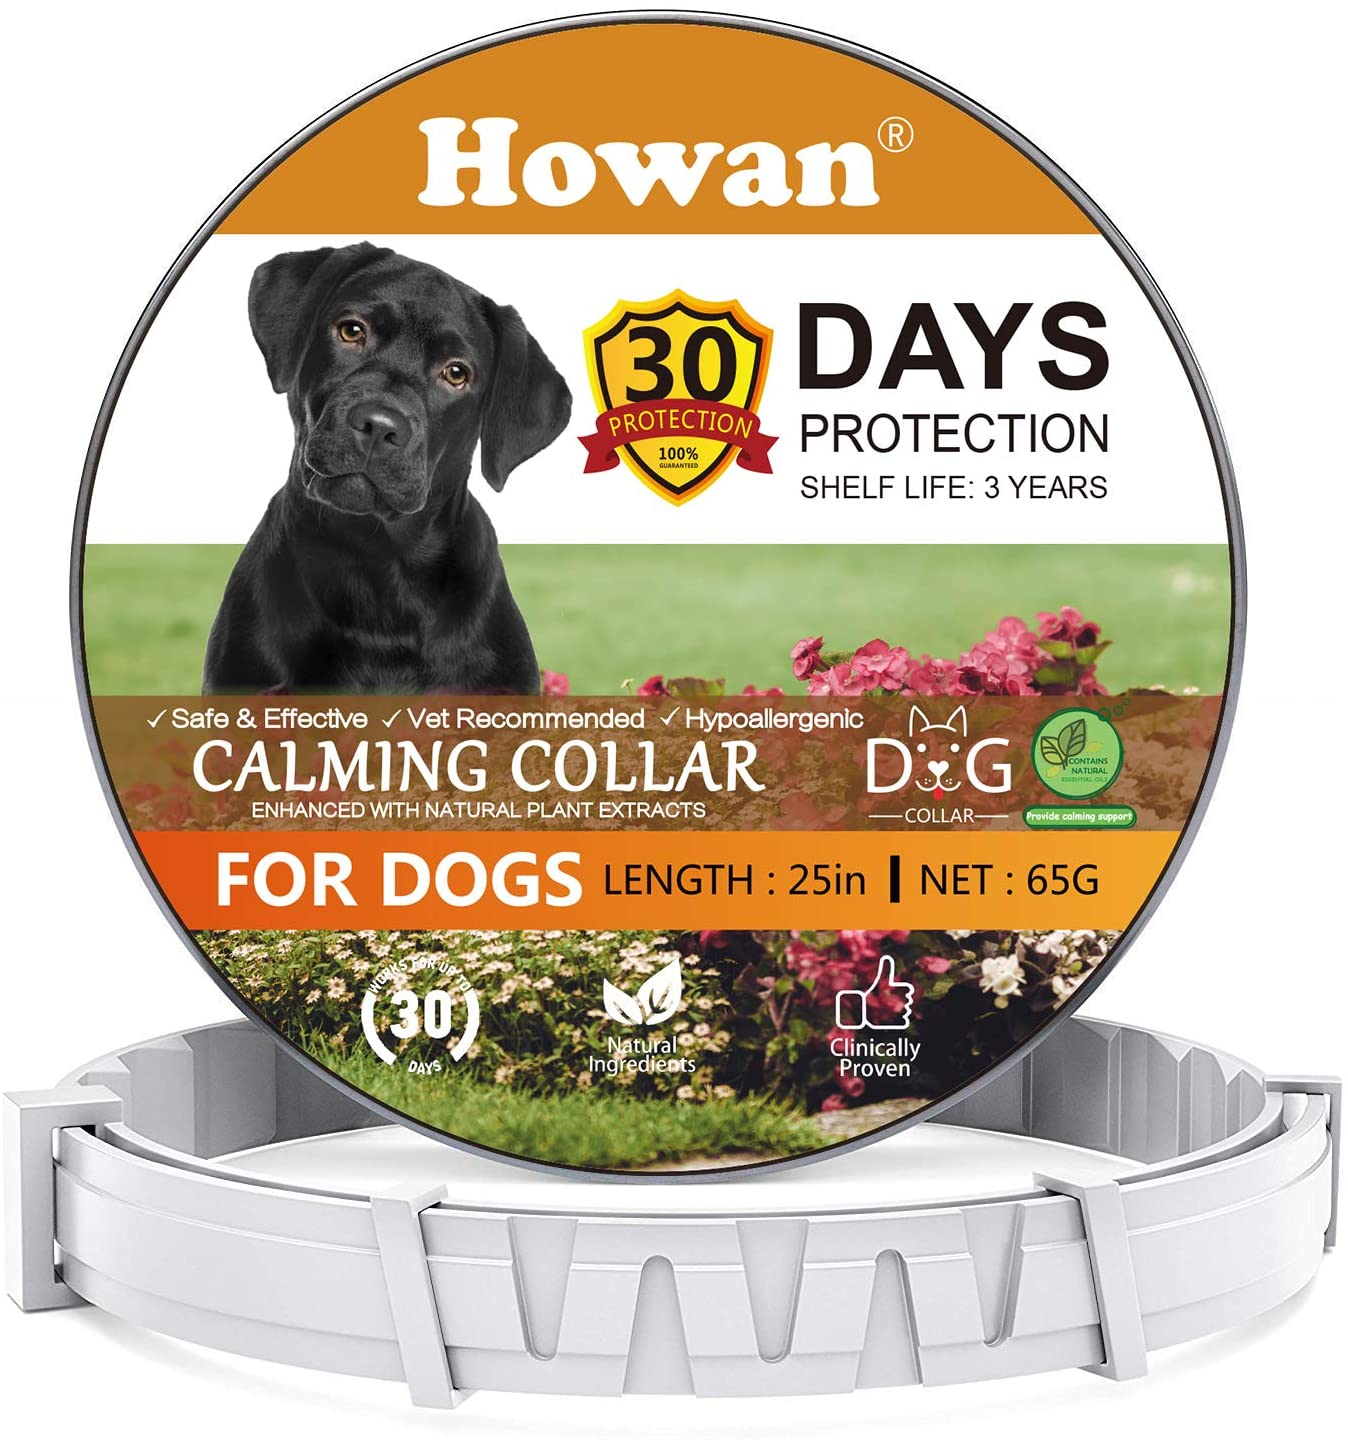 Howan [2020 Newest Calming Collars for Dogs, Adjustable Dog Collars- Natural Pheromones for 30 Days Protection, Reduce Anxiety Dogs- Waterproof Long-Lasting Calming Effect- 25 Inch